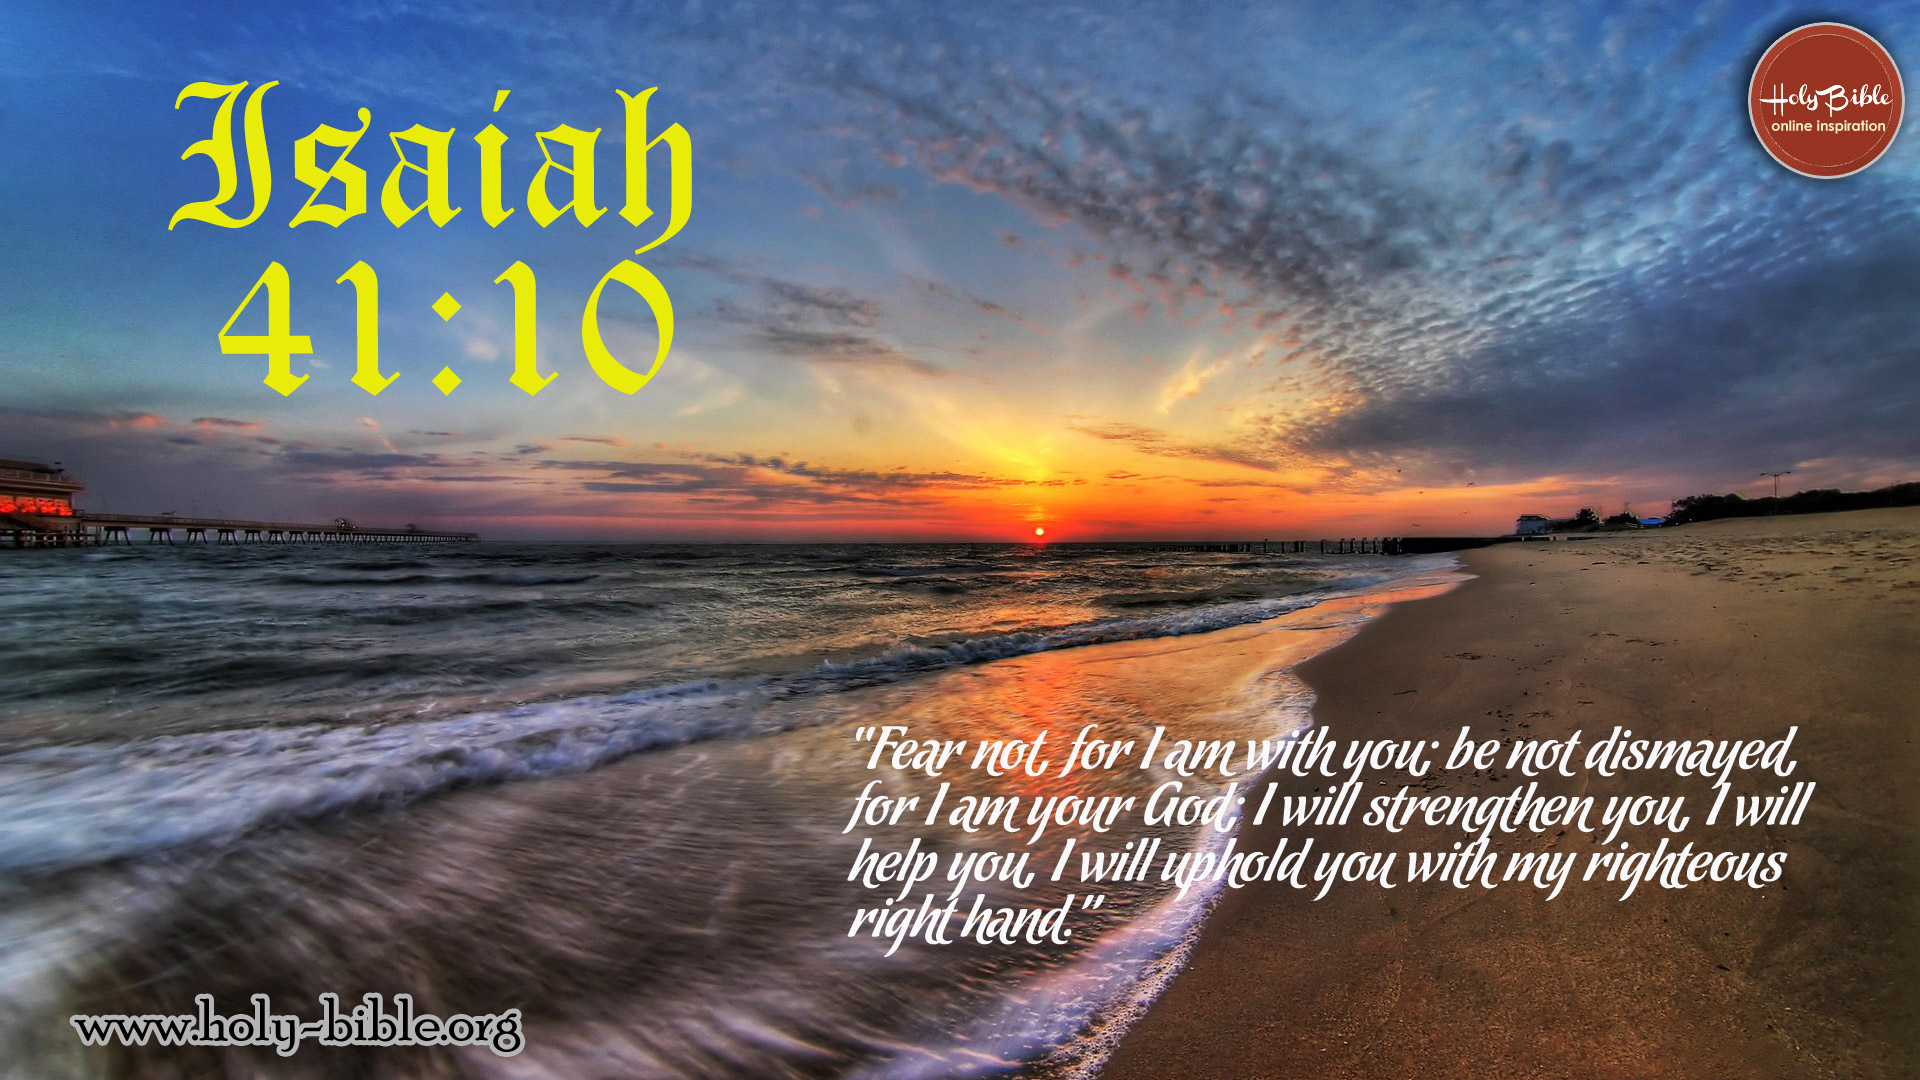 Bible Verse of the day - Isaiah 41:10